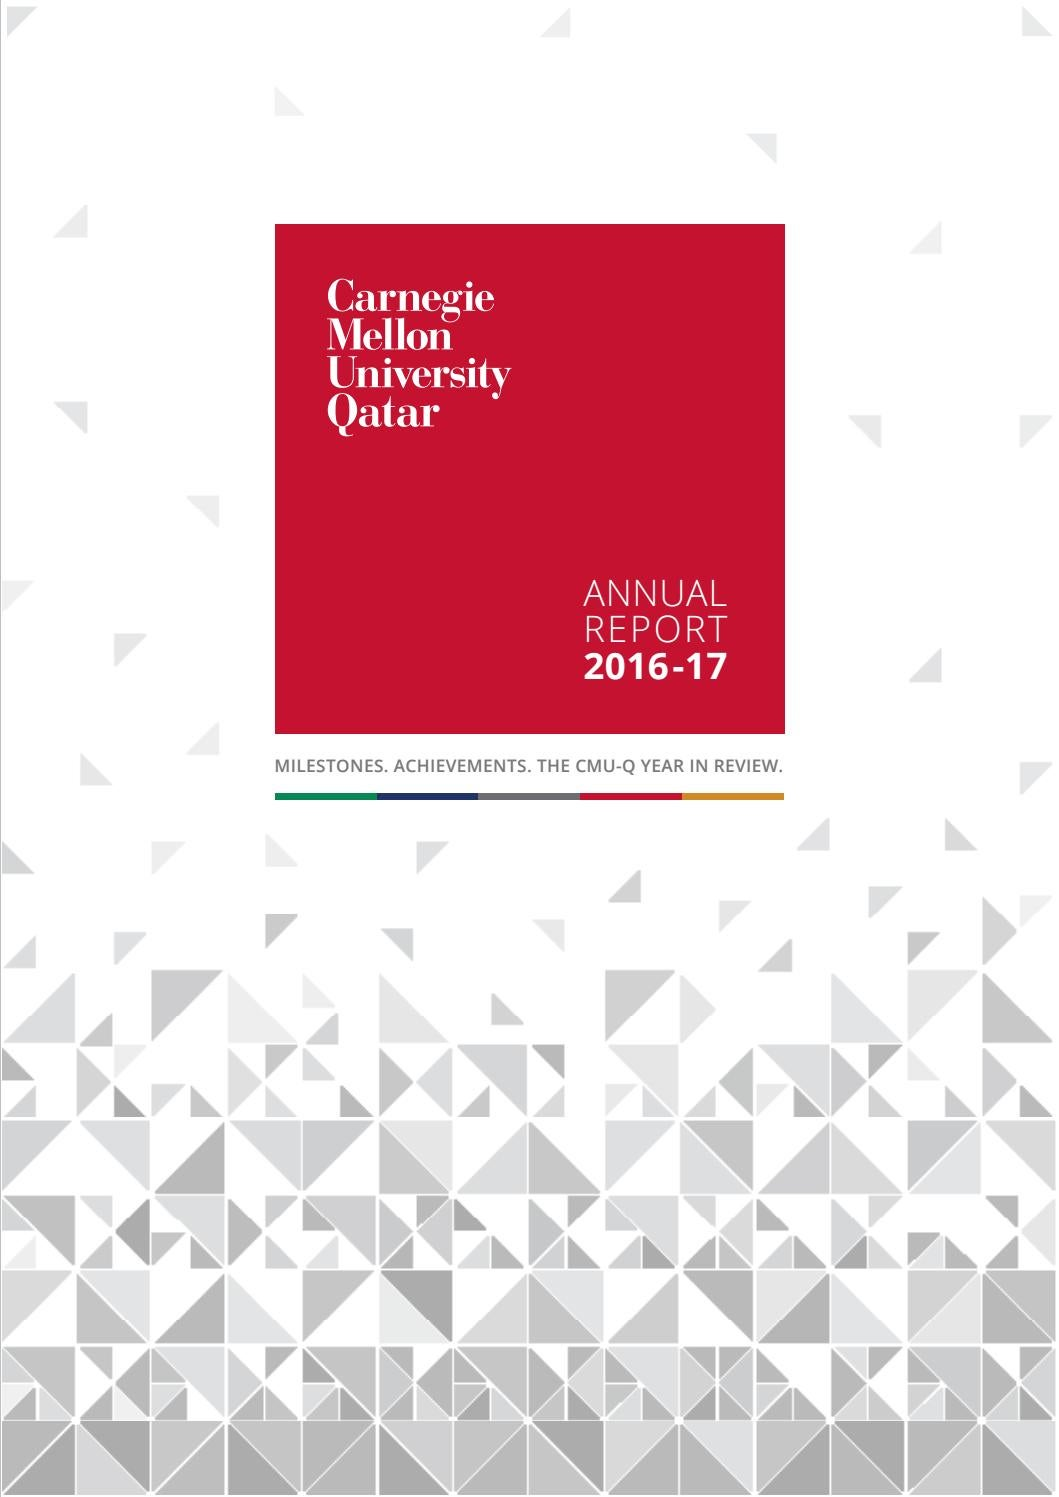 Annual report 2016-2017 by Carnegie Mellon University in